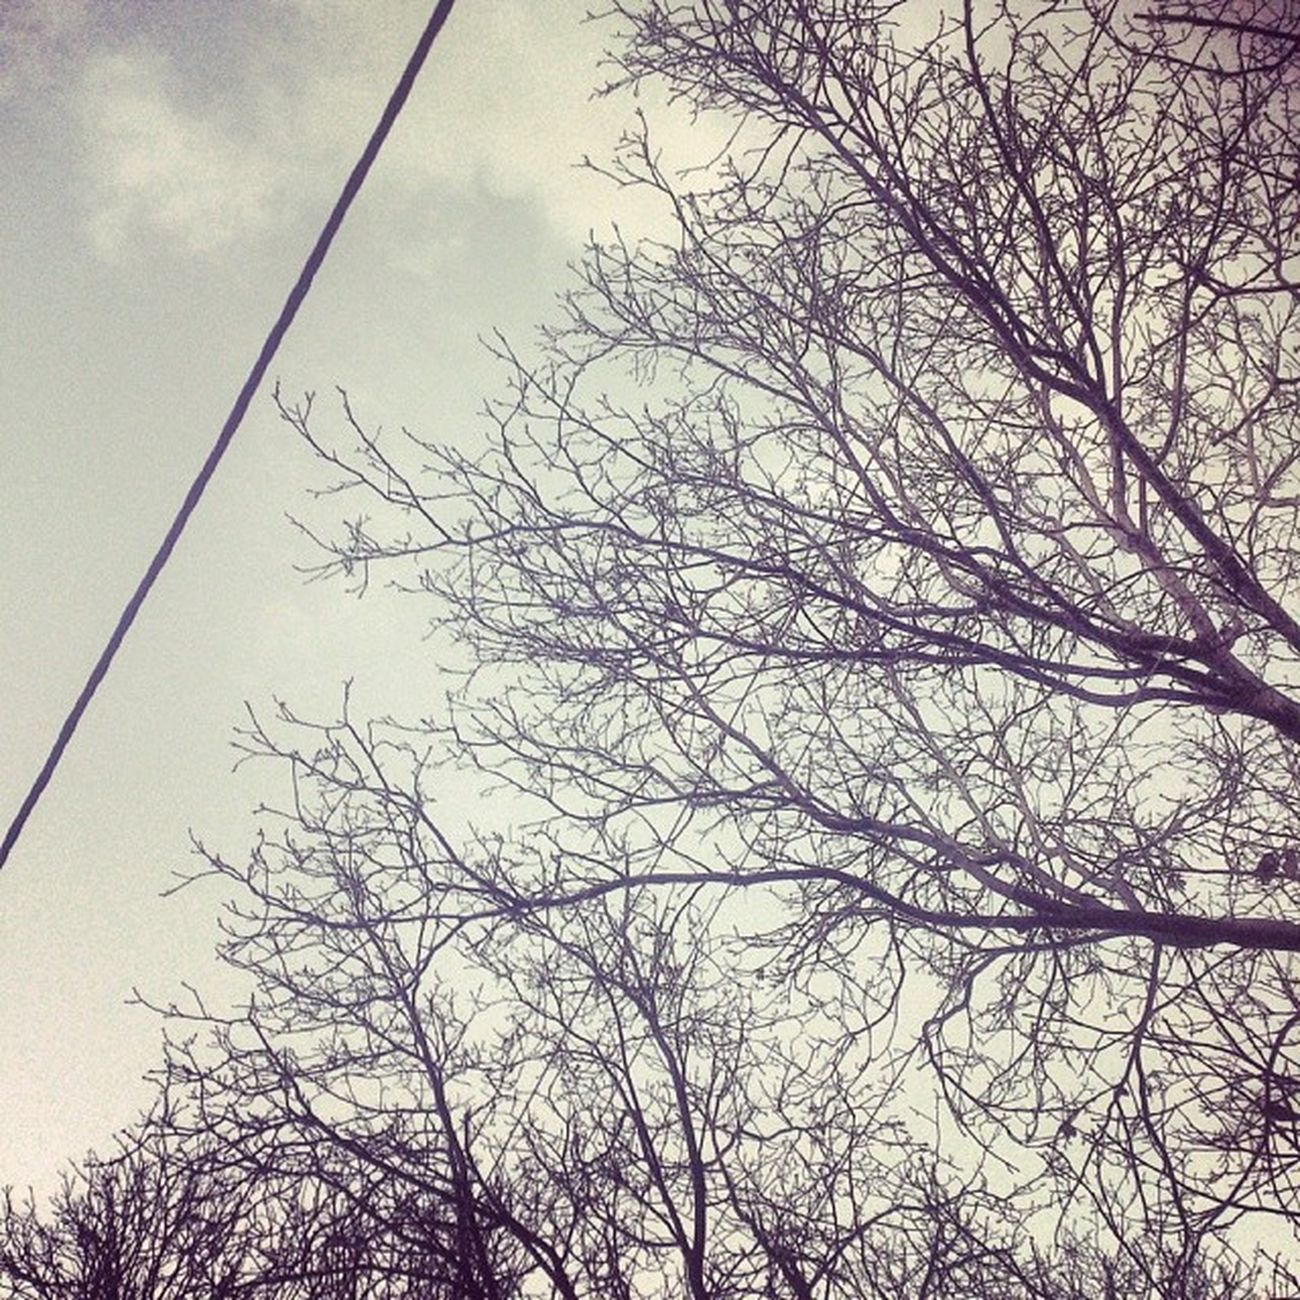 Iran Hamedan Rain Sky clouds Trees branch cable Wire Autumn Fall همدان پاییز درخت شاخه ابر آسمان باران